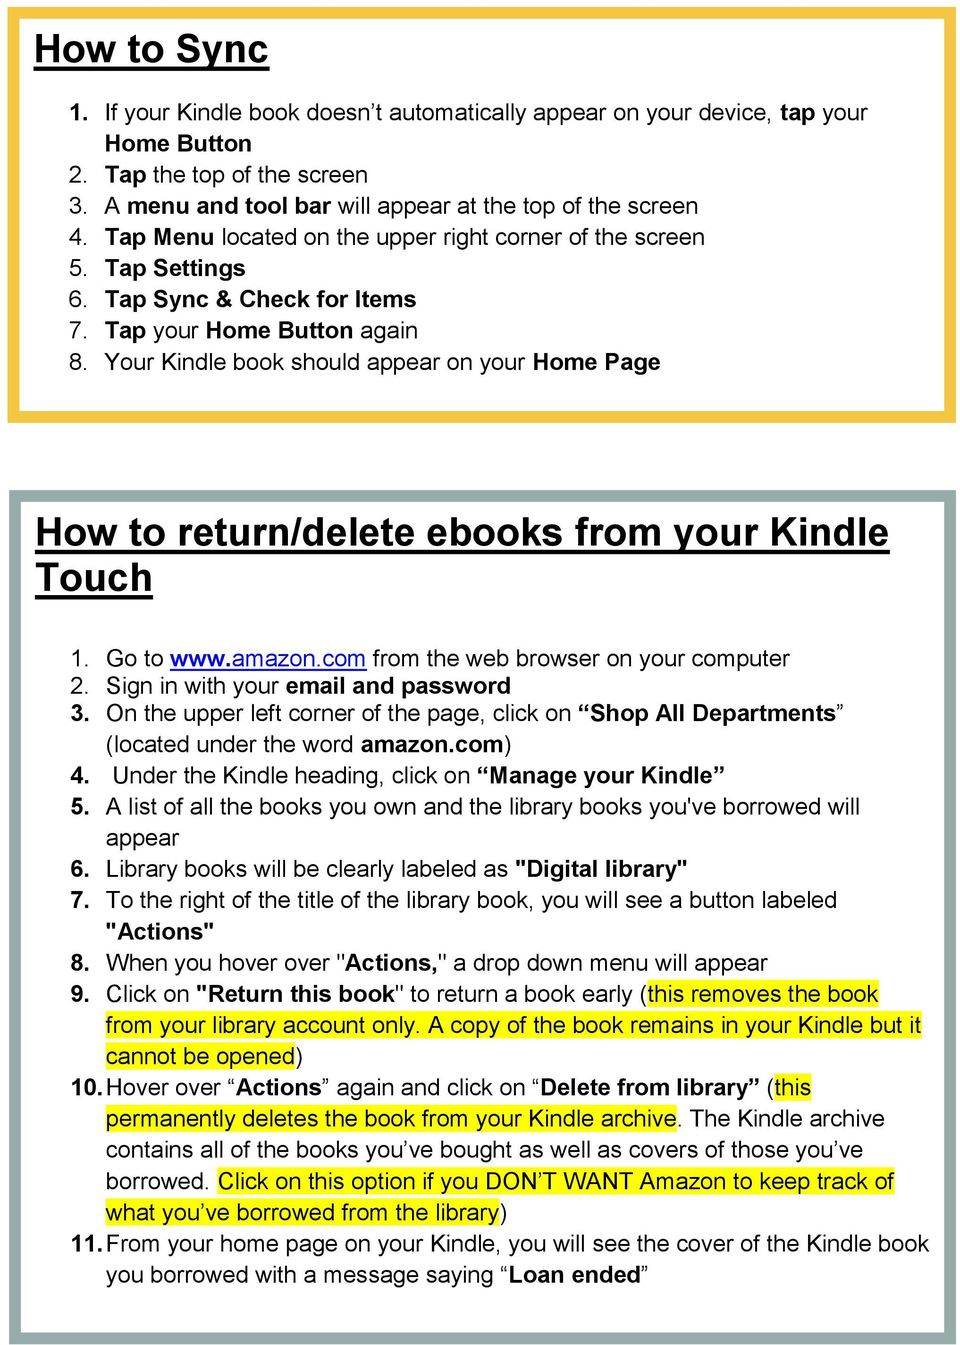 Your Kindle book should appear on your Home Page How to return/delete ebooks from your Kindle Touch 1. Go to www.amazon.com from the web browser on your computer 2.